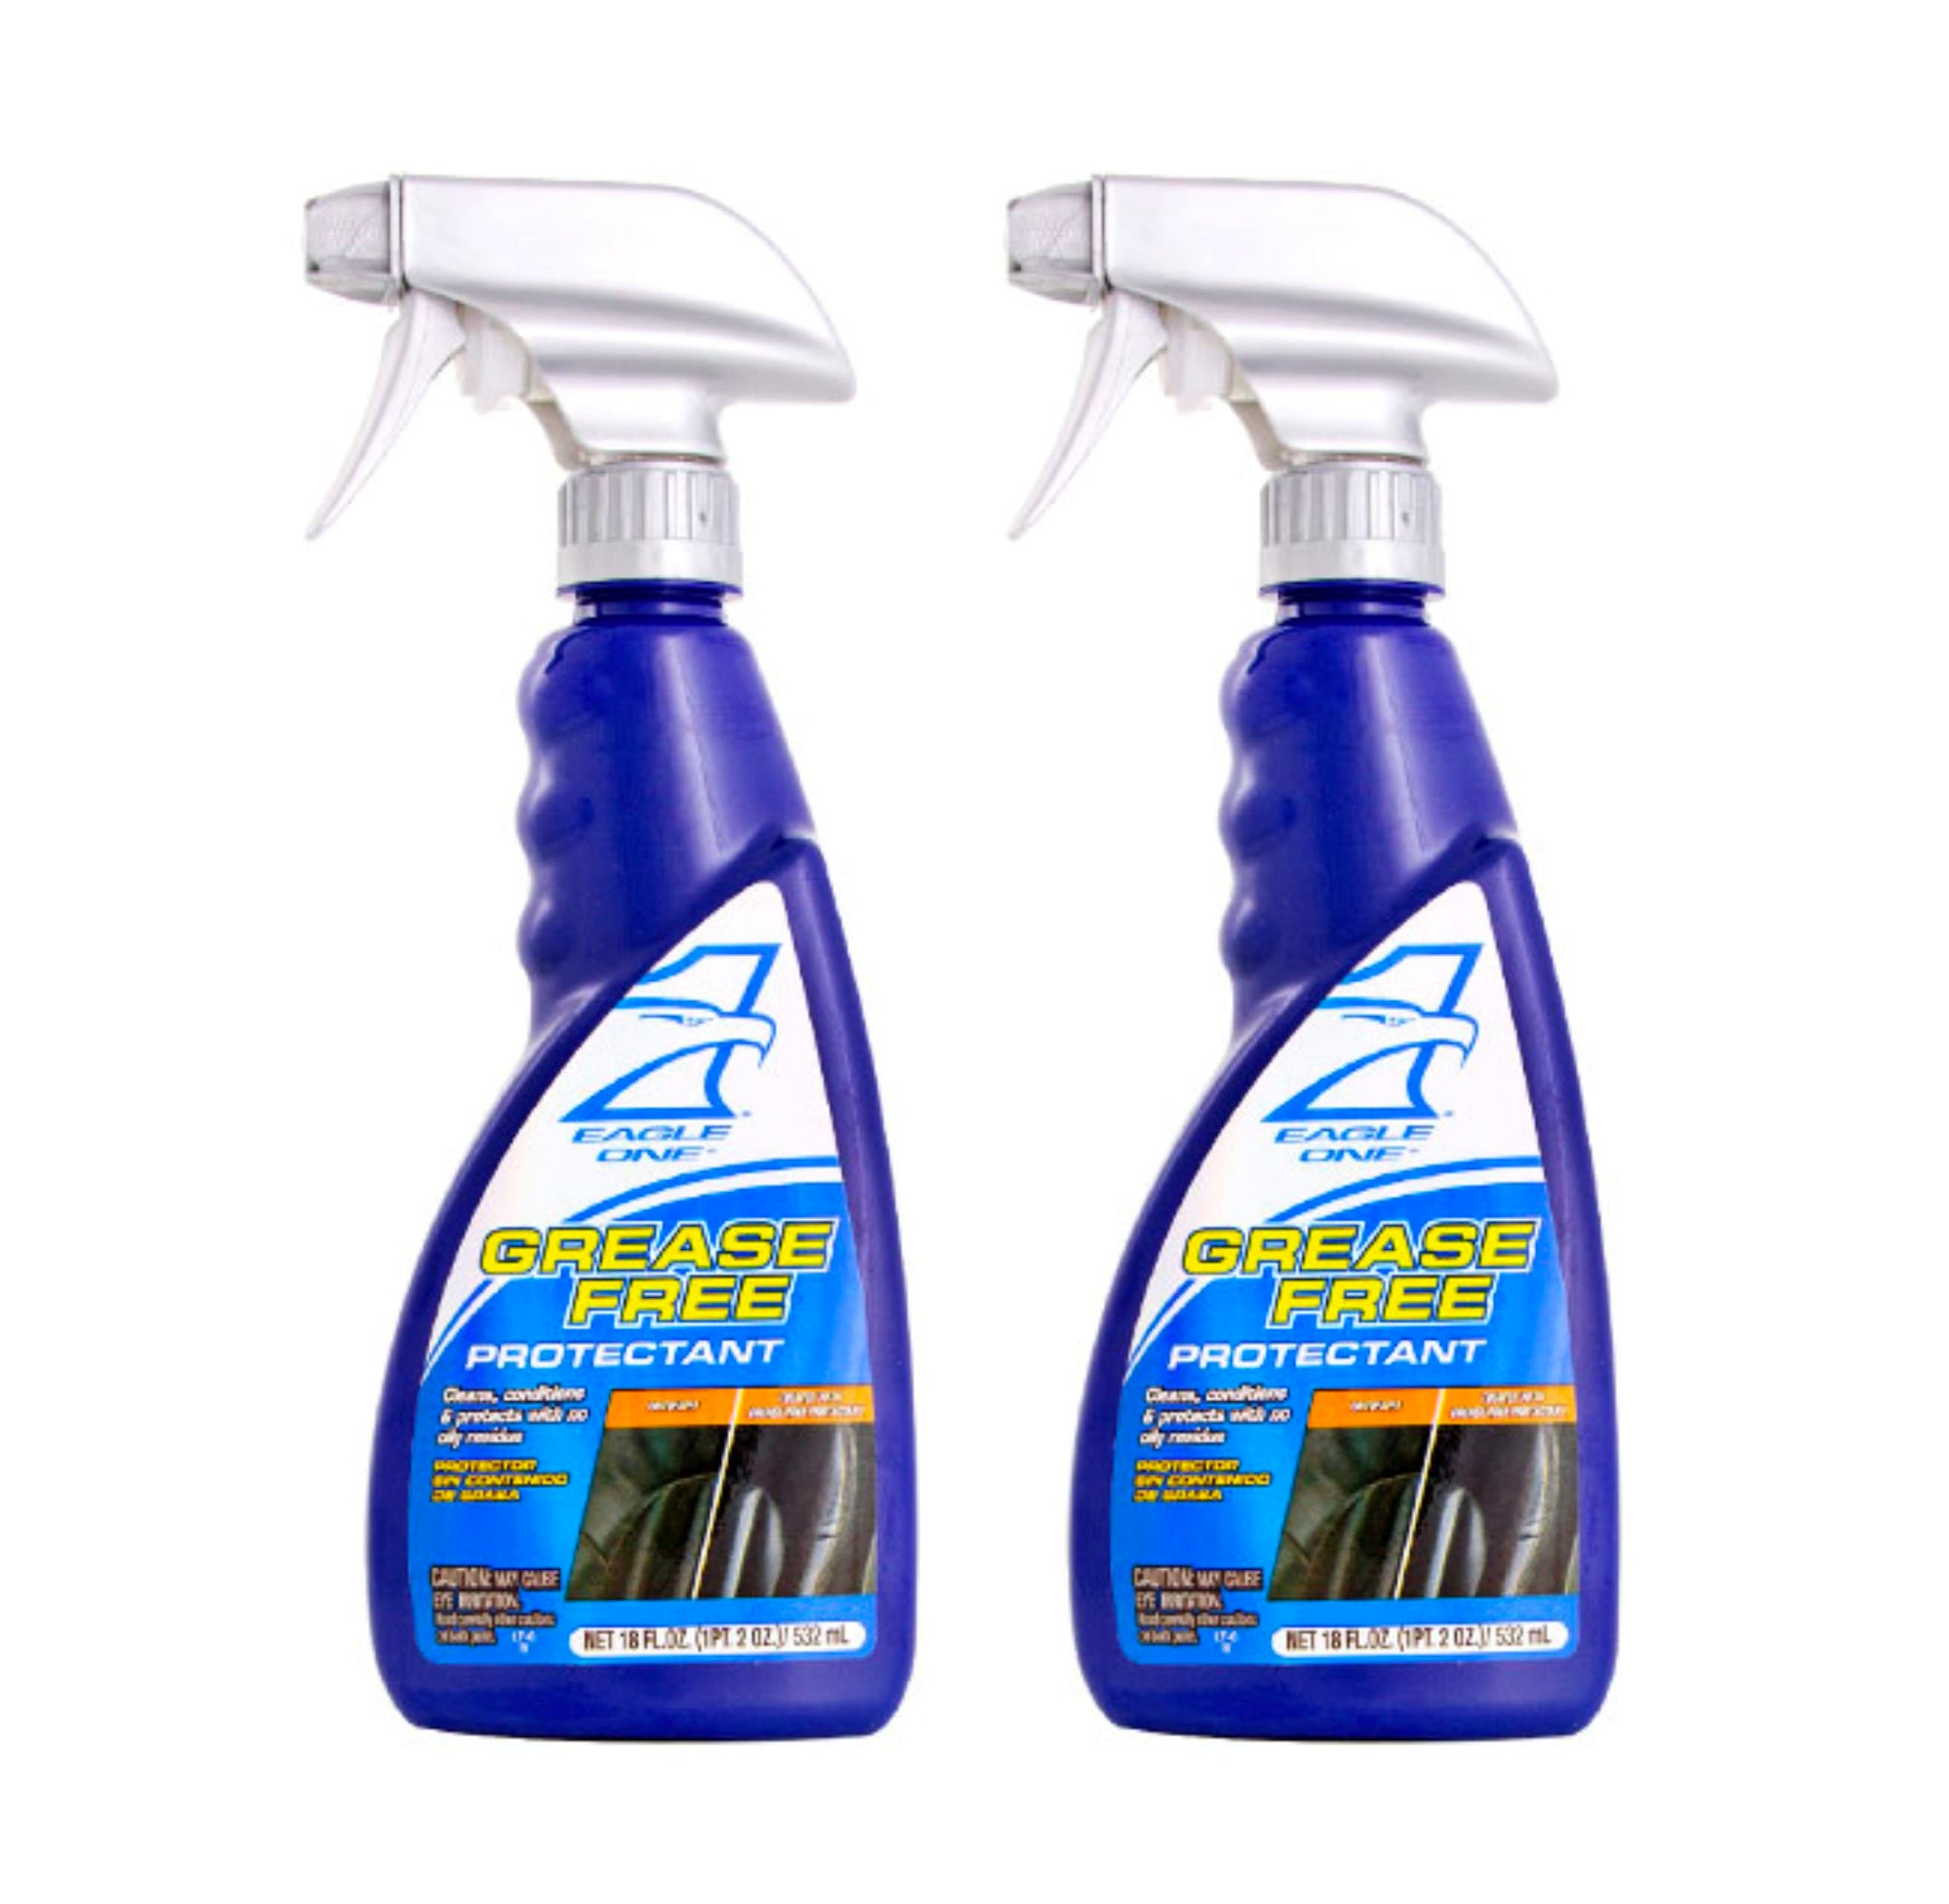 Eagle One - Grease Free Protectant Home Eagle One